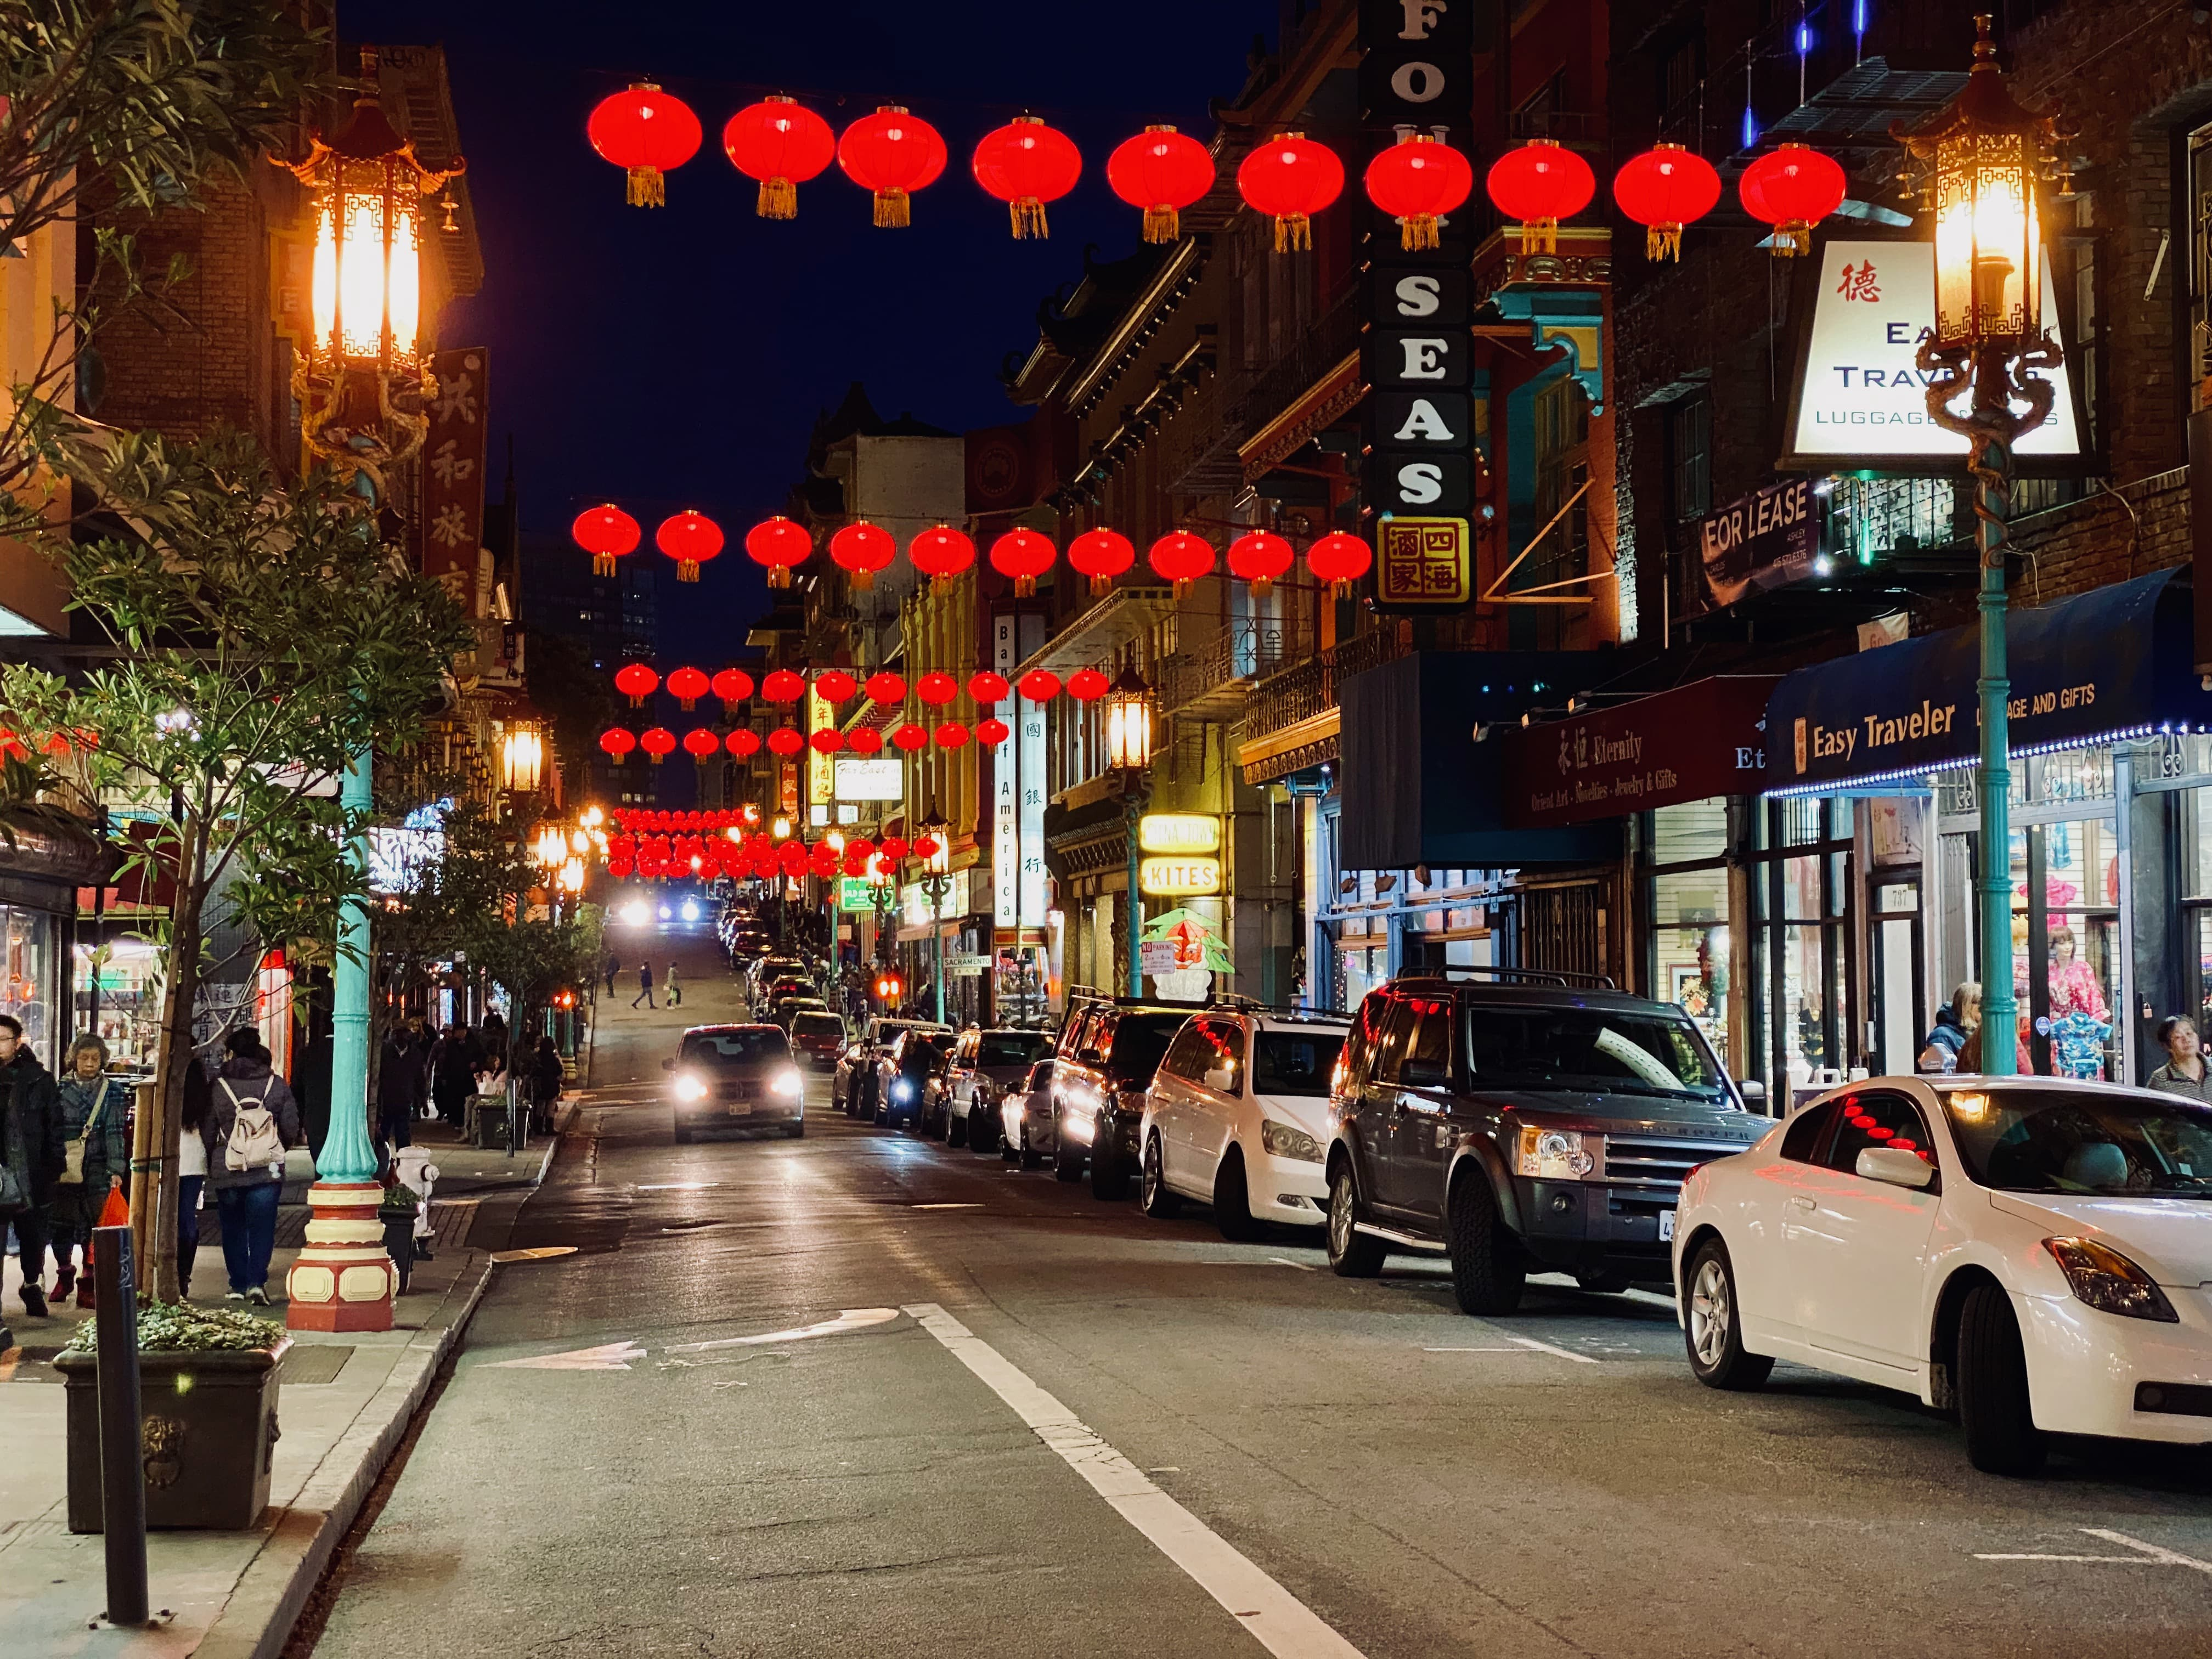 San Francisco's China town at night